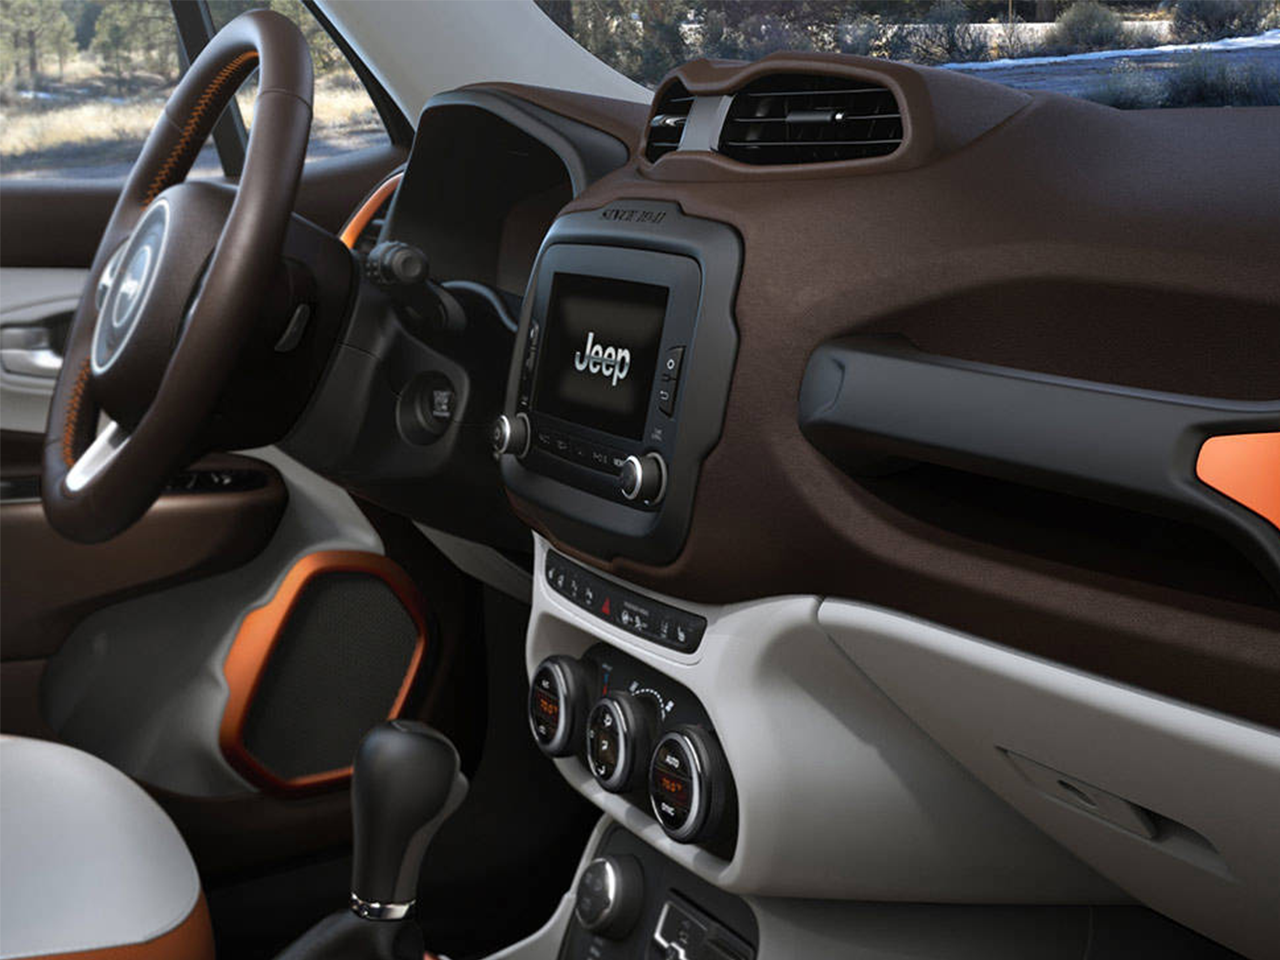 amusing-design-of-the-blak-and-orange-accents-ideas-of-the-jeep-renegade-2015-interior-ideas